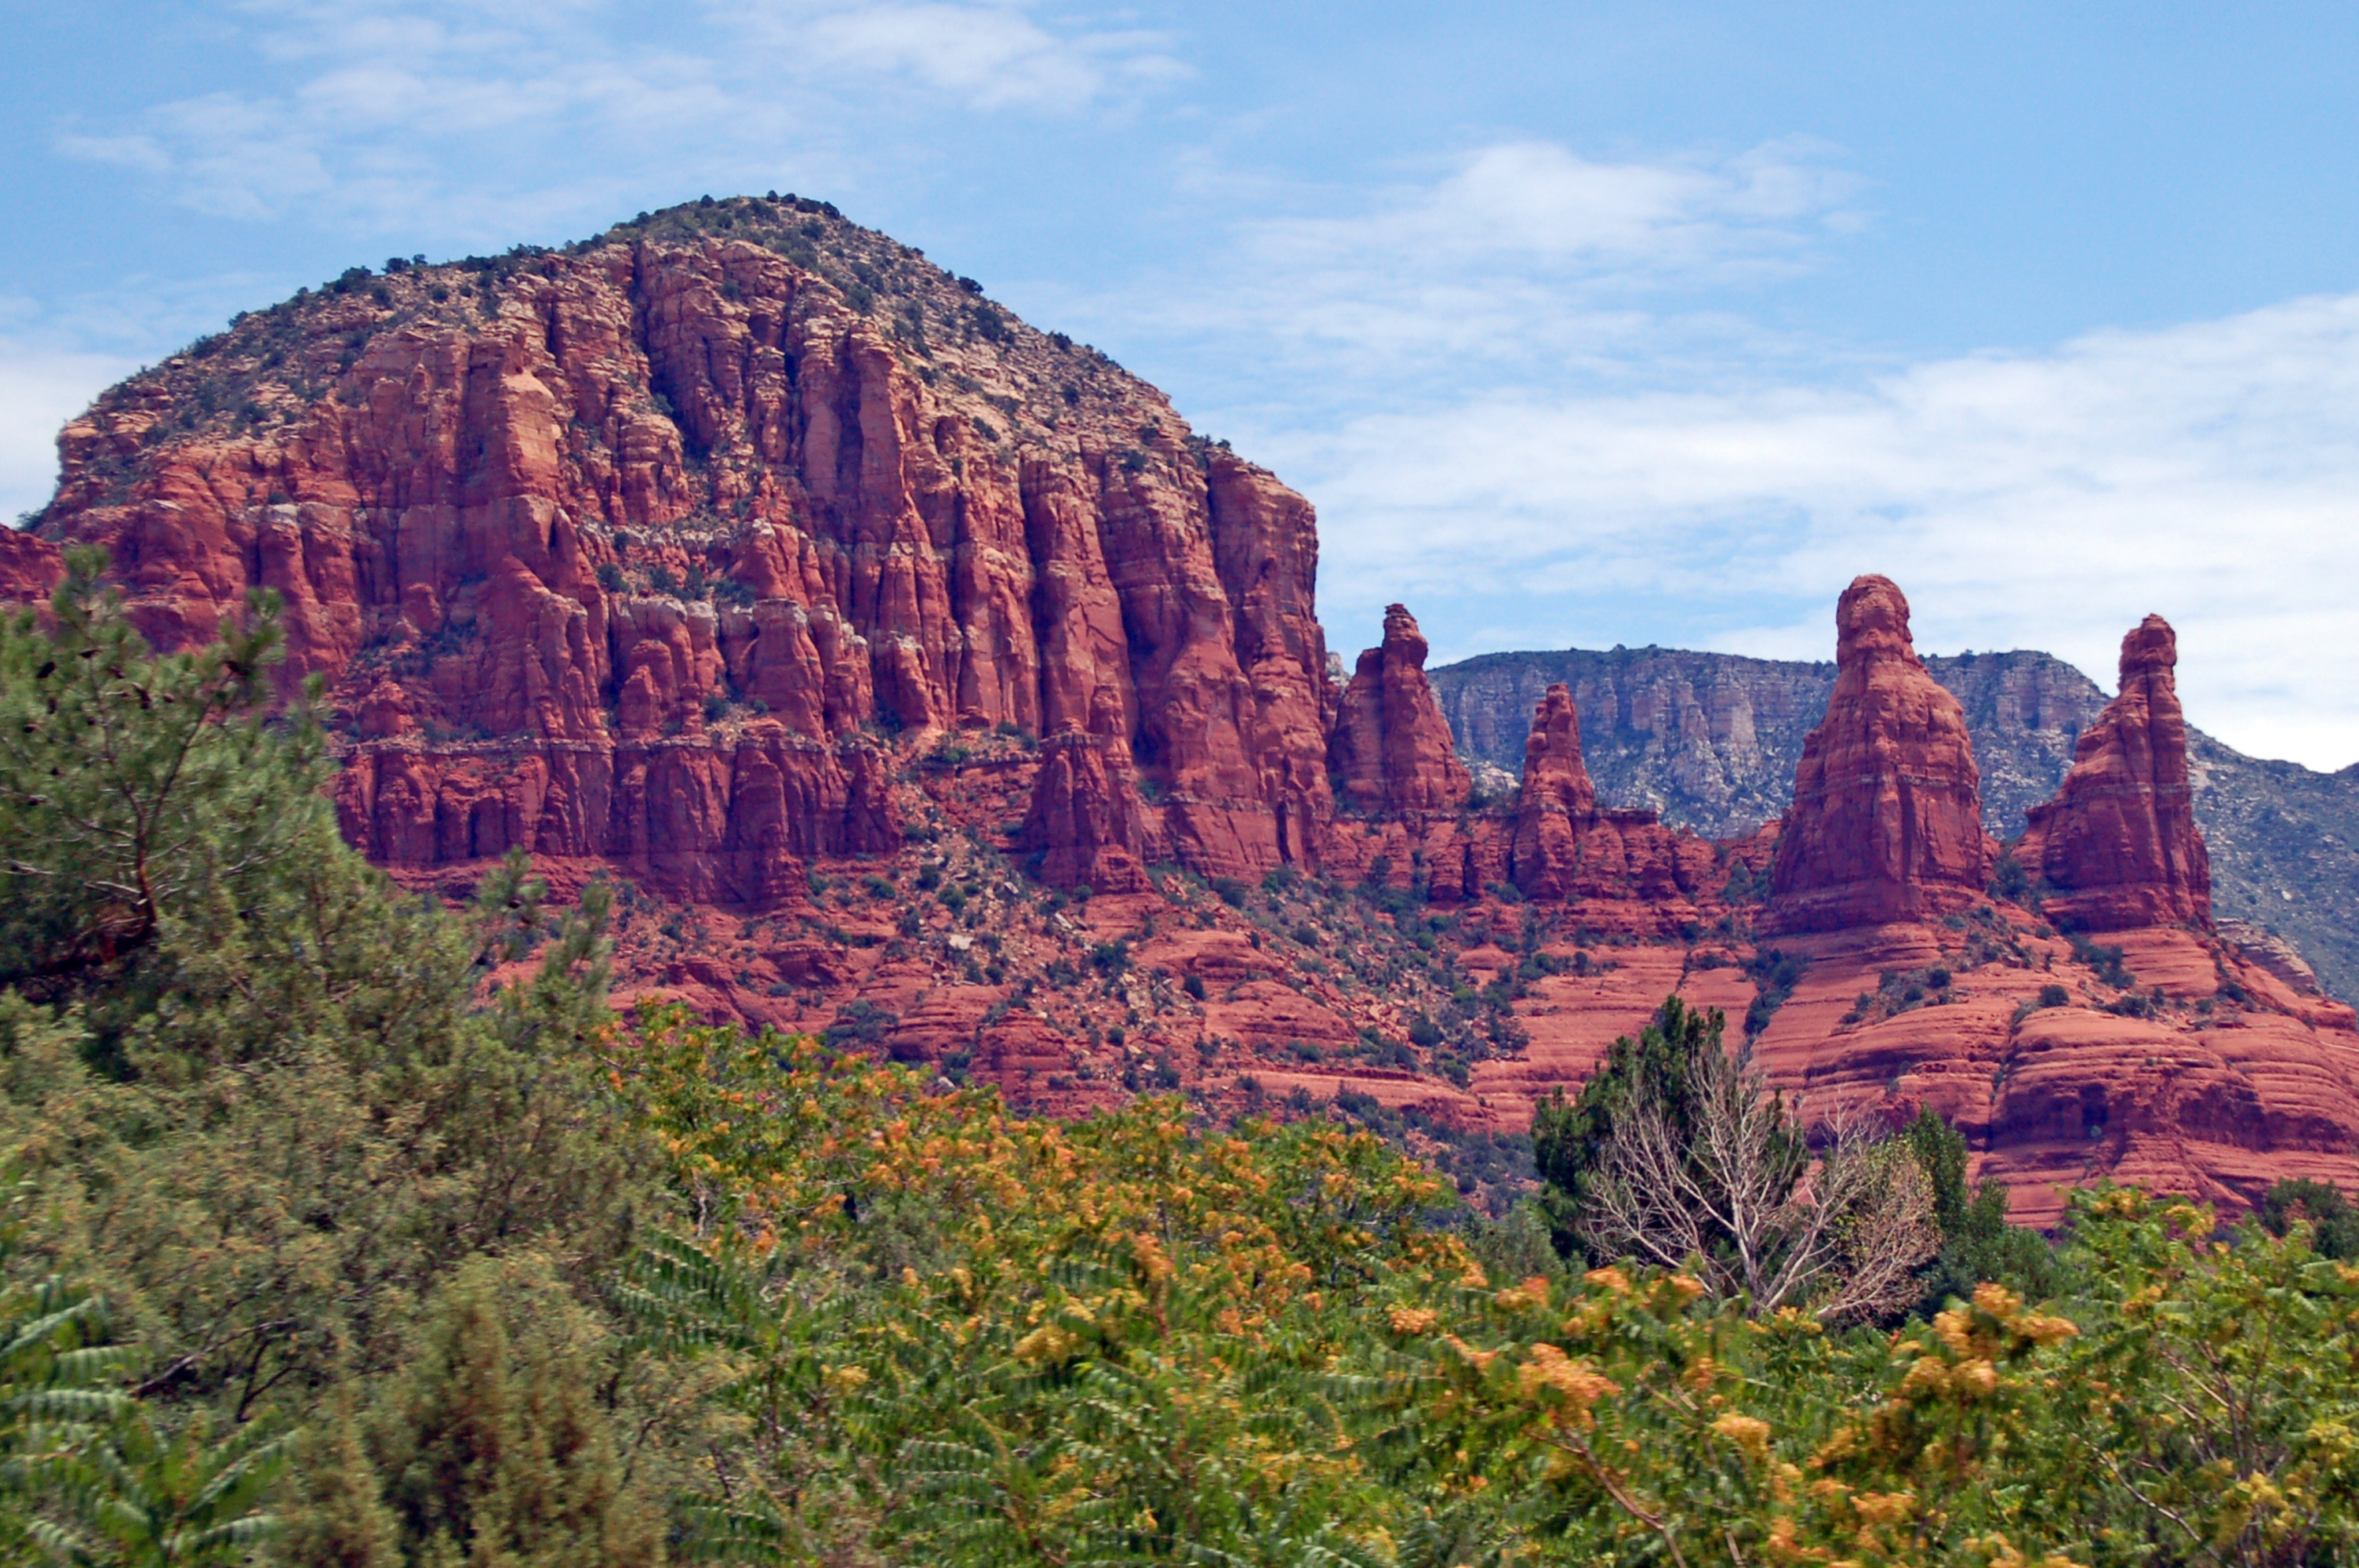 red rock formation in sedona arizona pics4learning